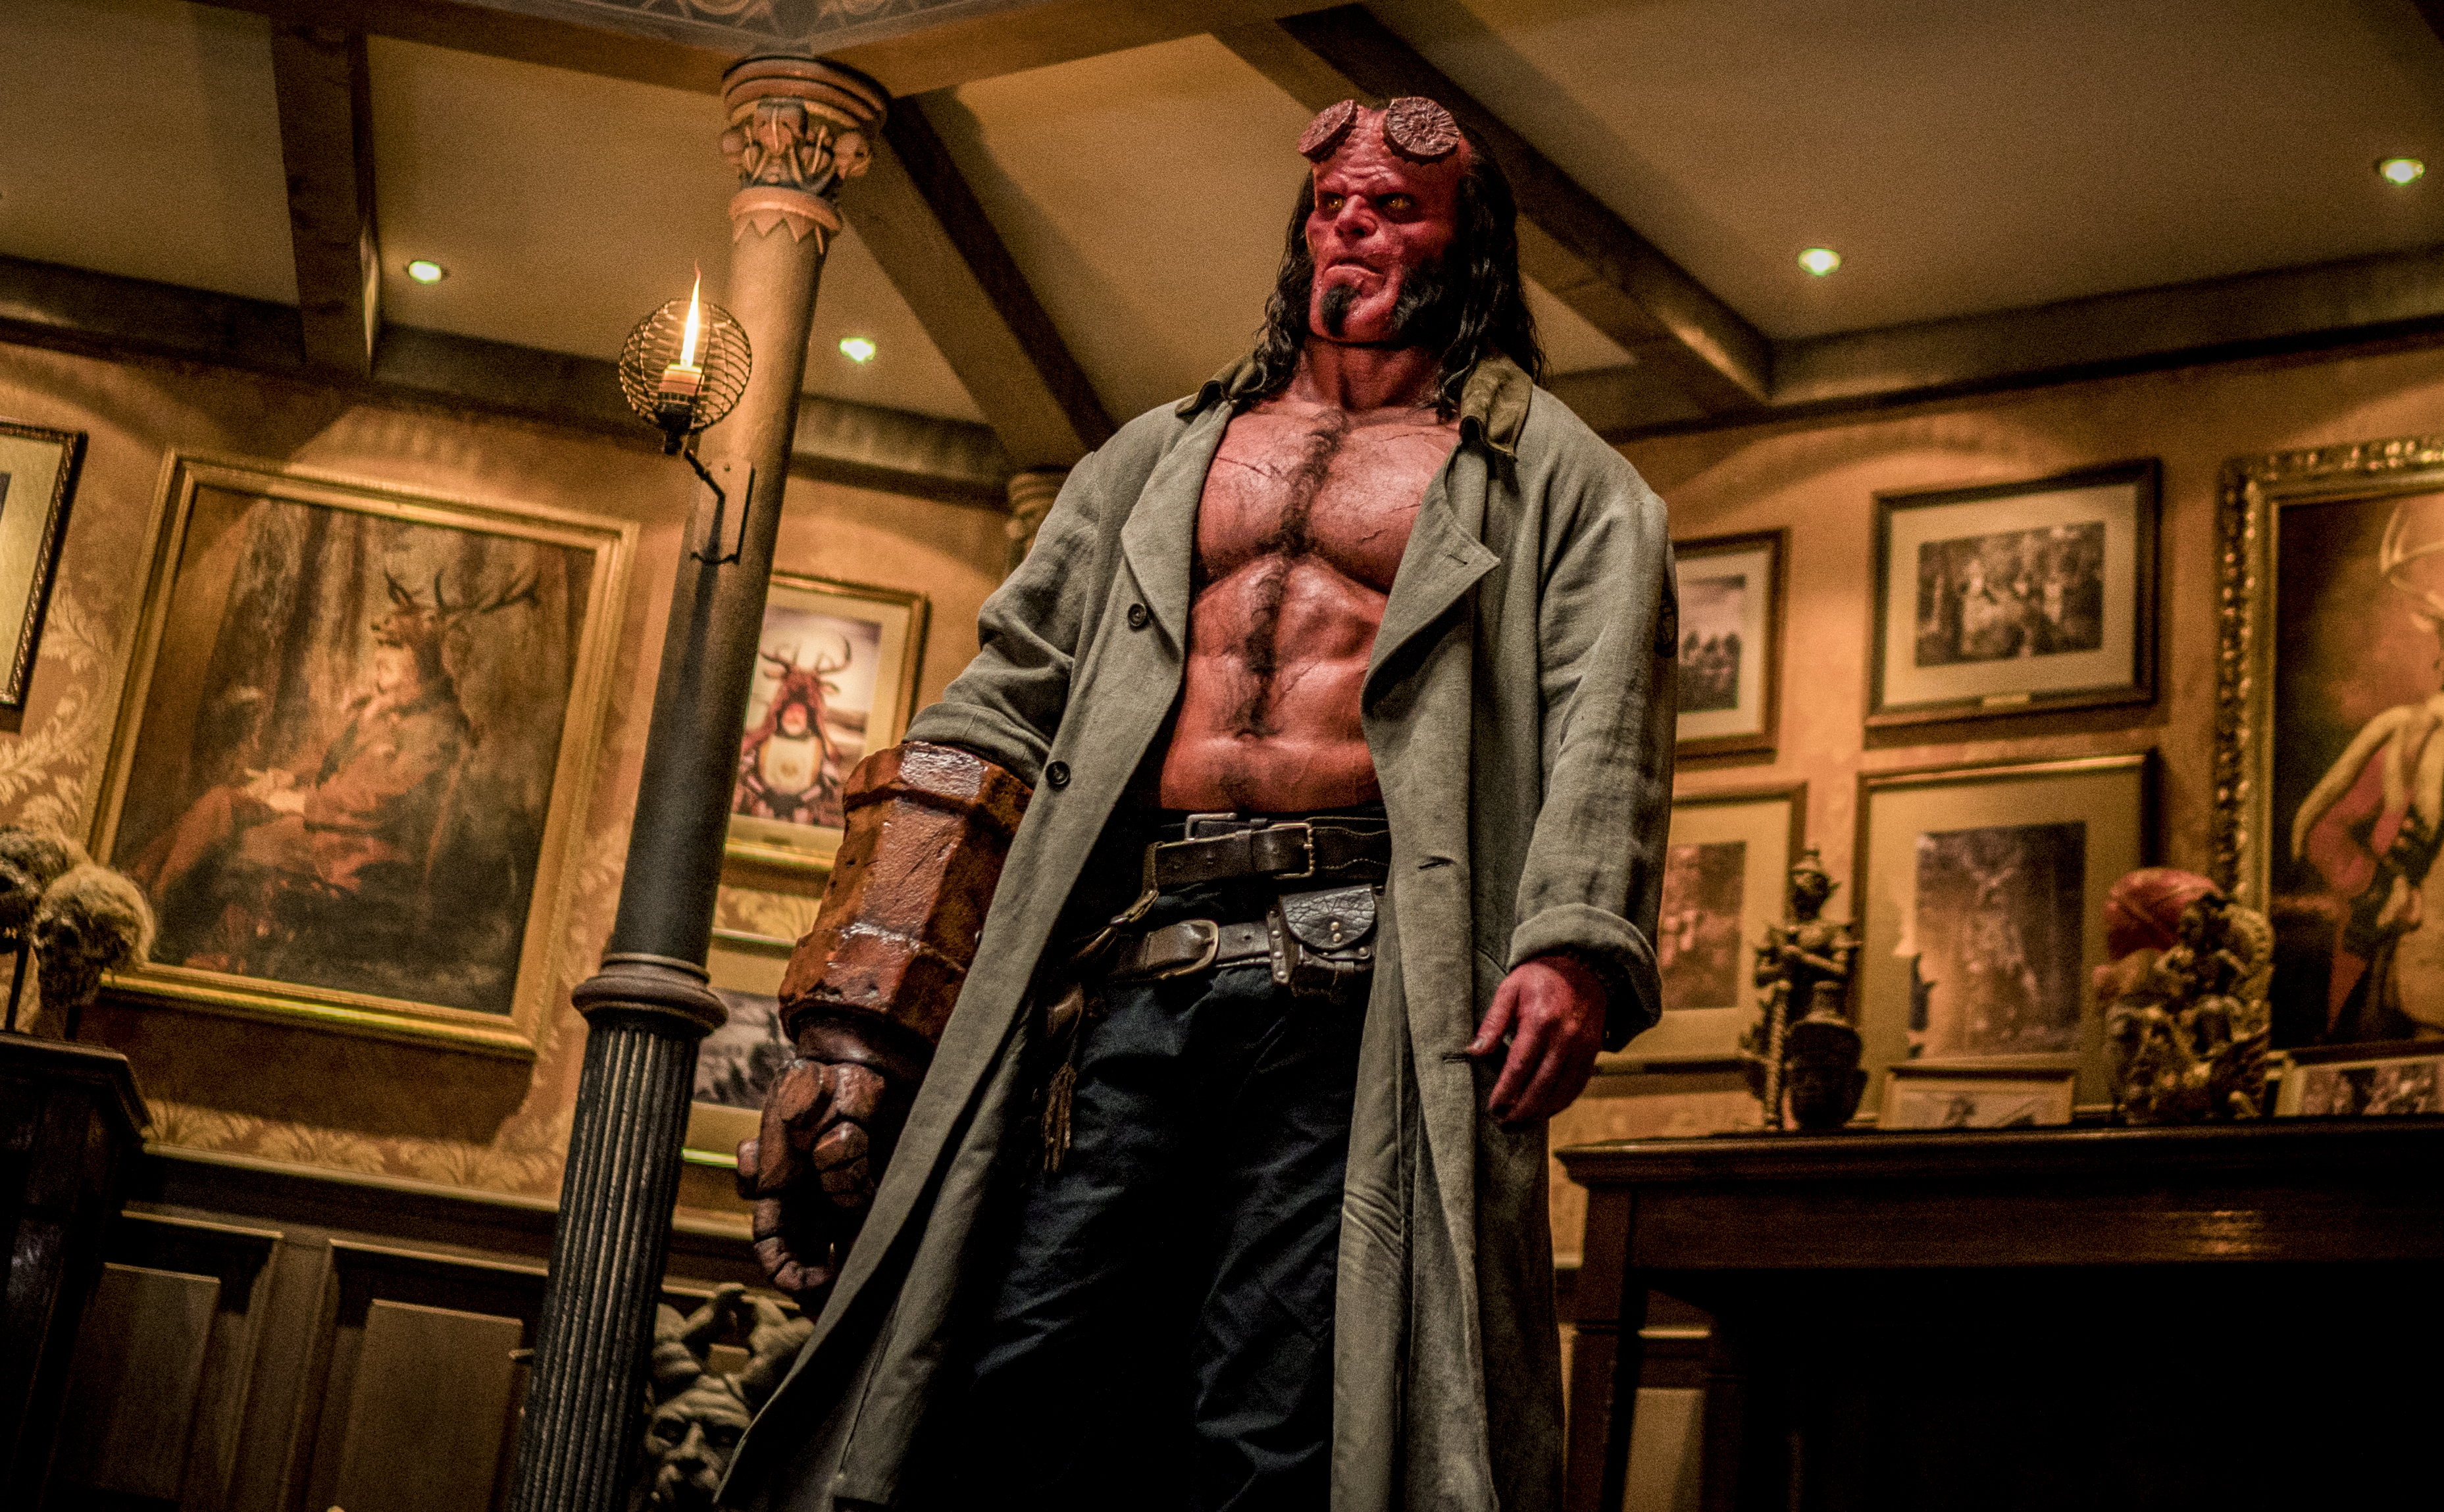 [News] Celebrating 25 Years of HELLBOY